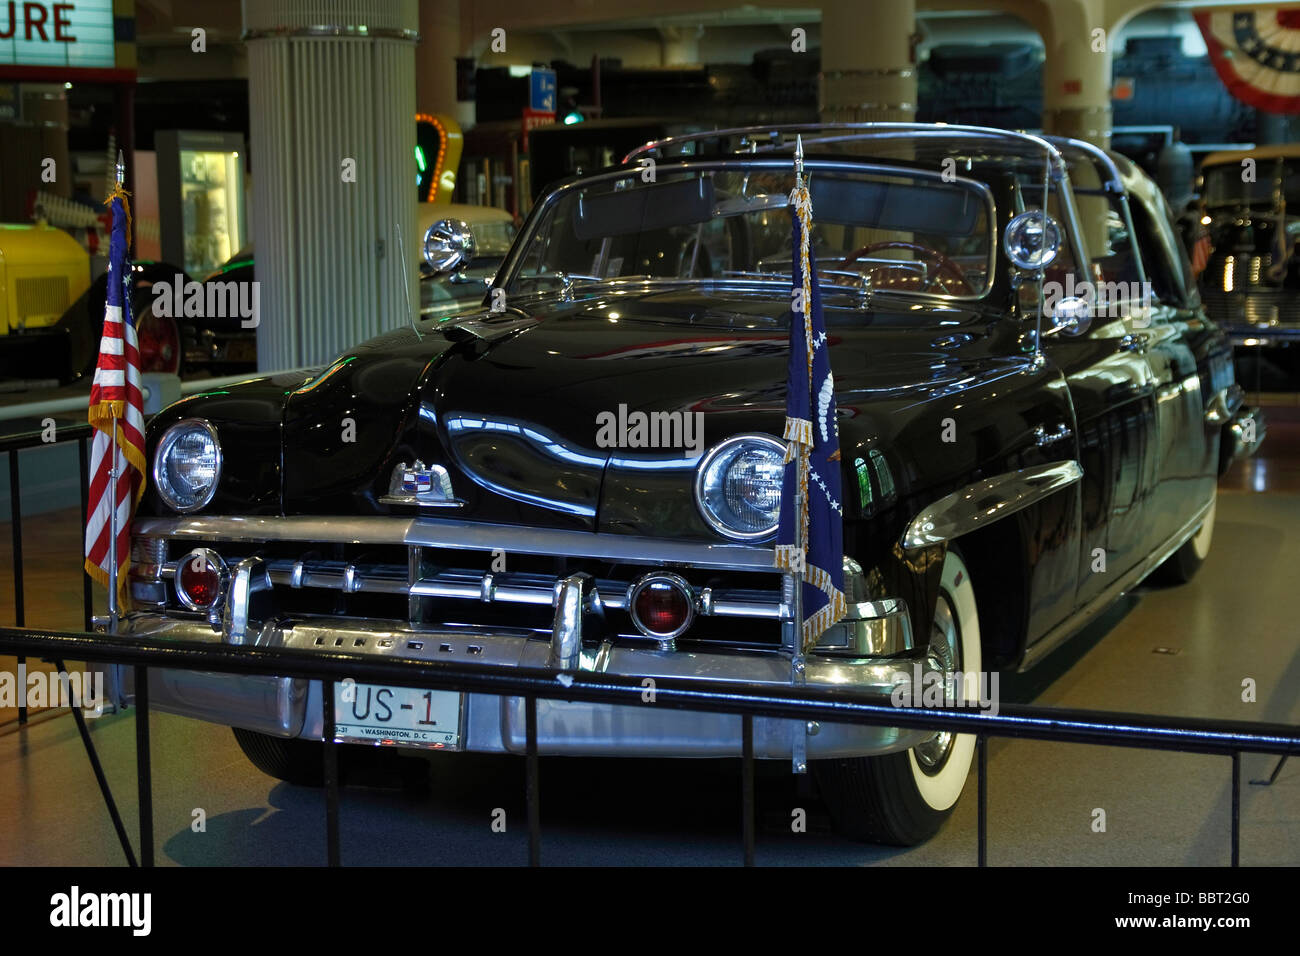 ford president car. 1950 lincoln bubbletop dwight d eisenhower henry ford museum historic old president presidential car .